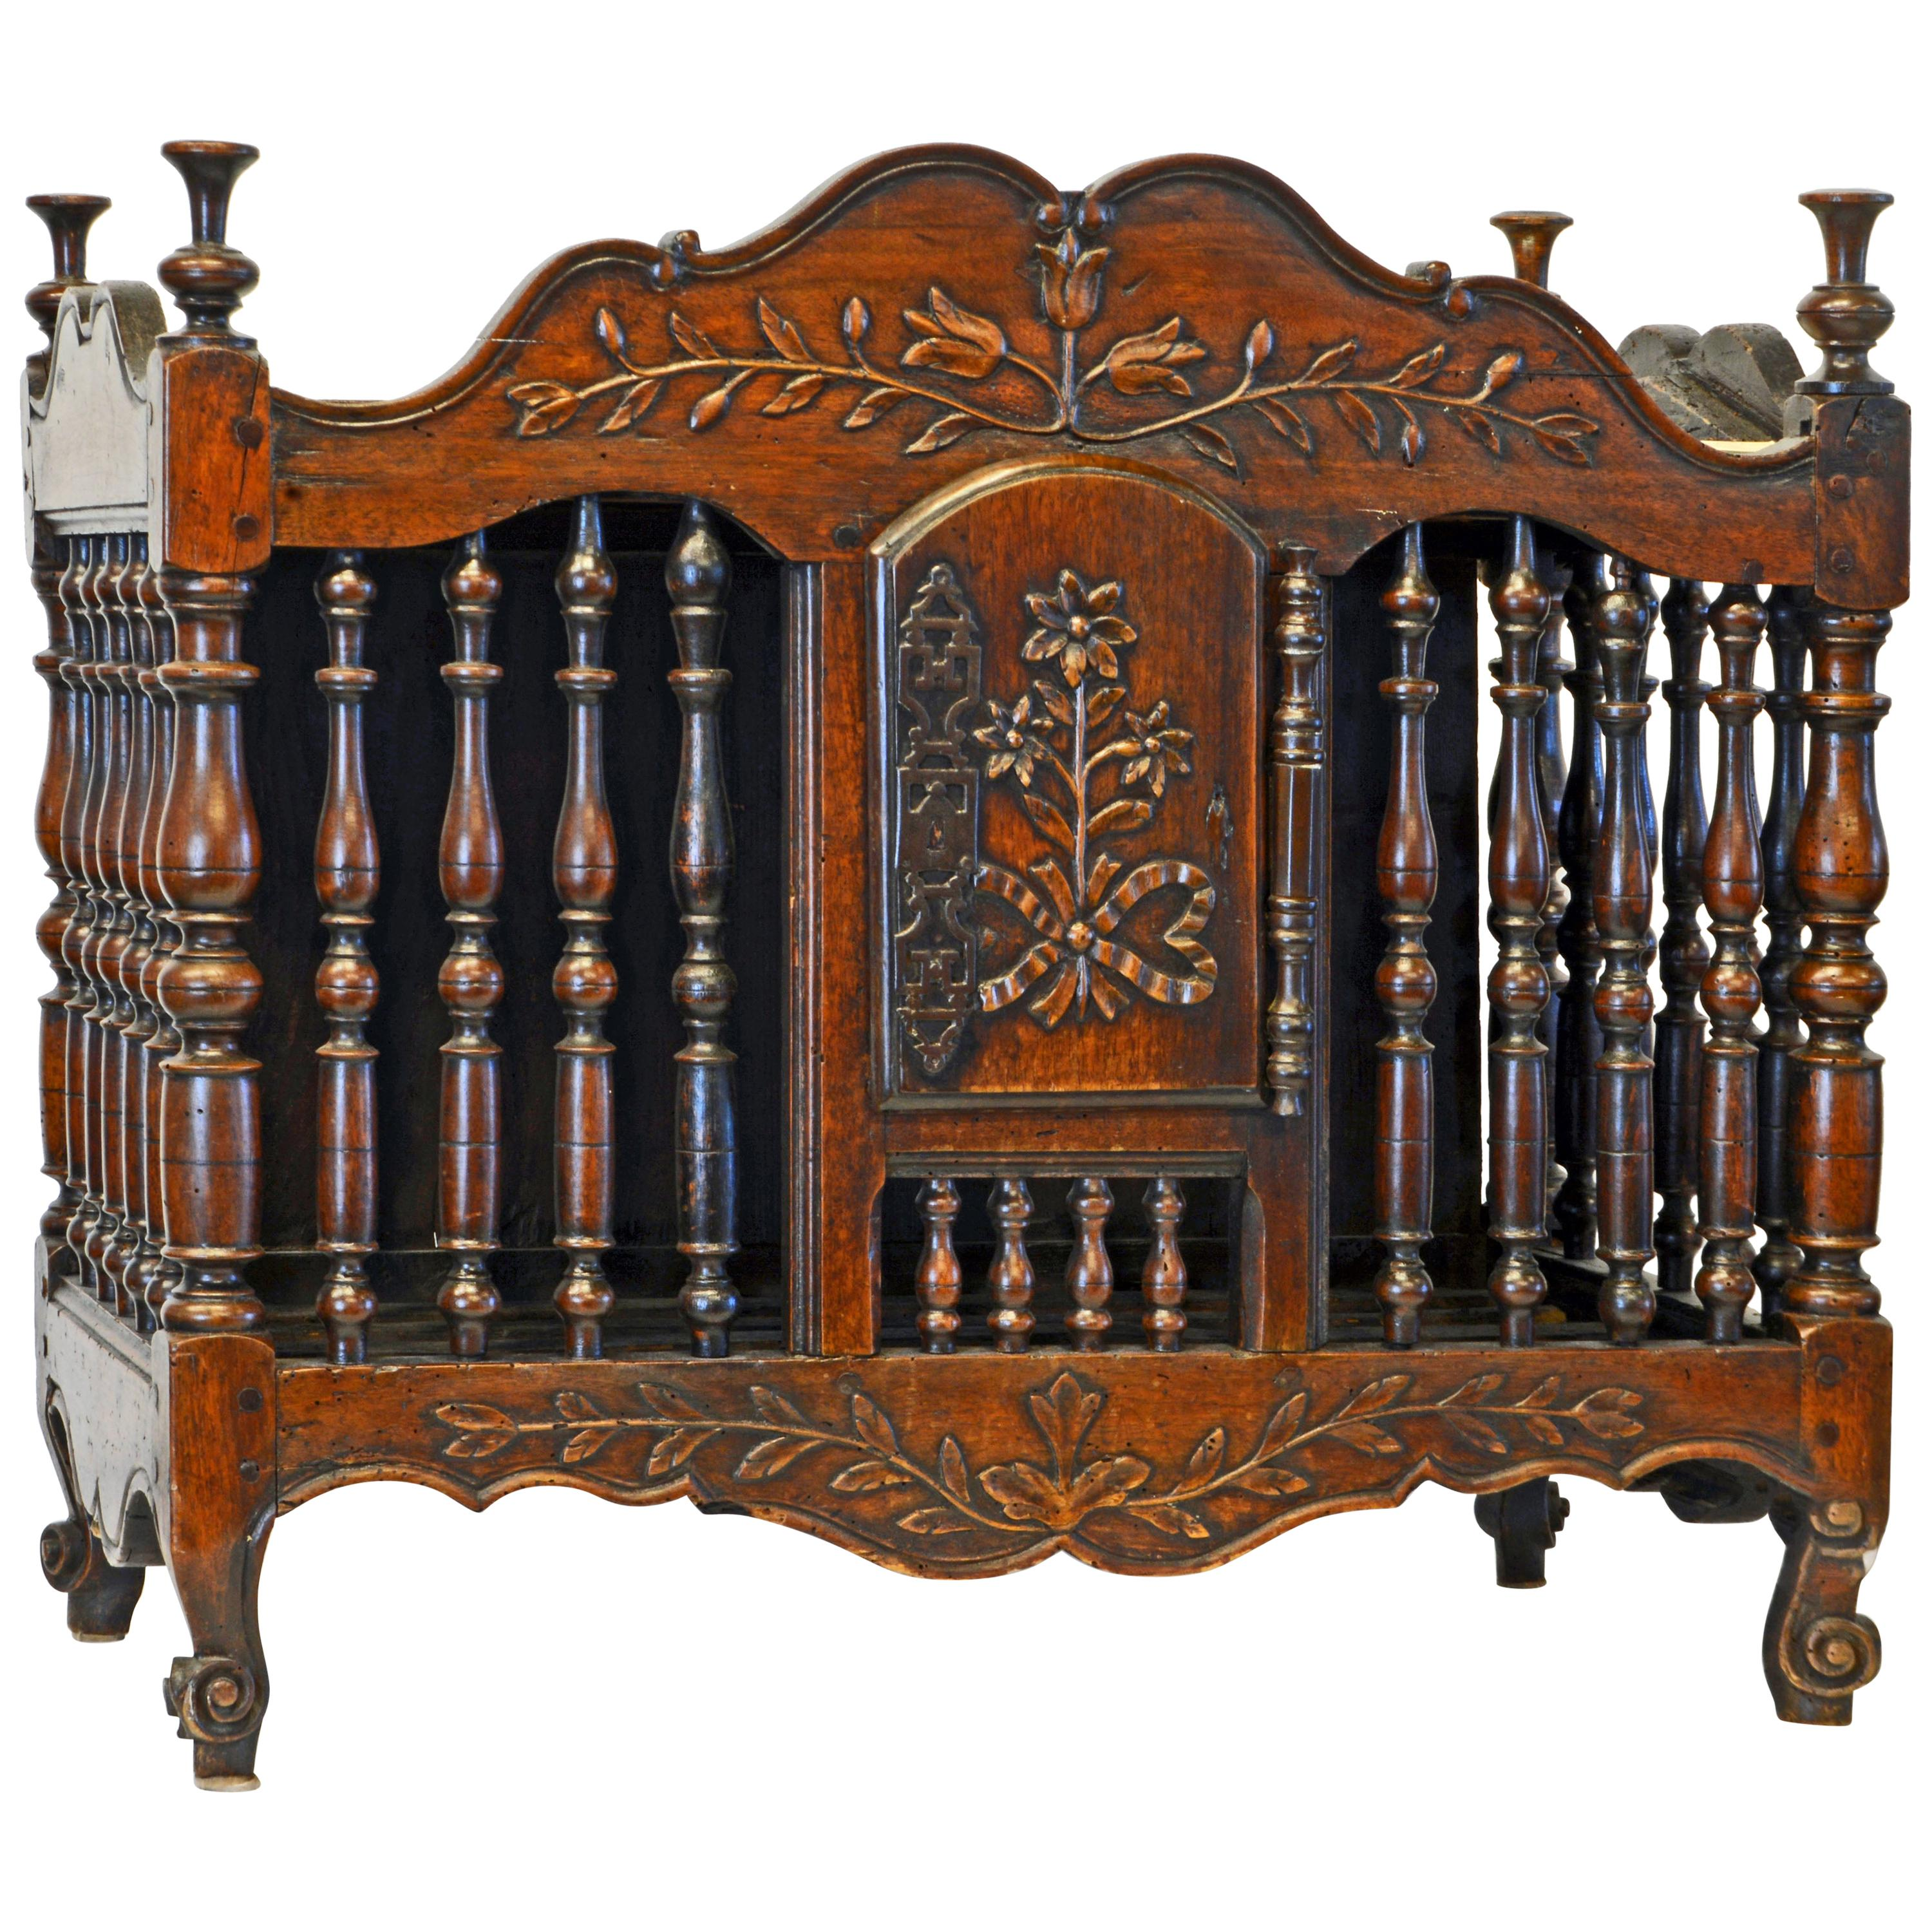 Late 18th Century French Provincial Carved and Turned Walnut Panetiere